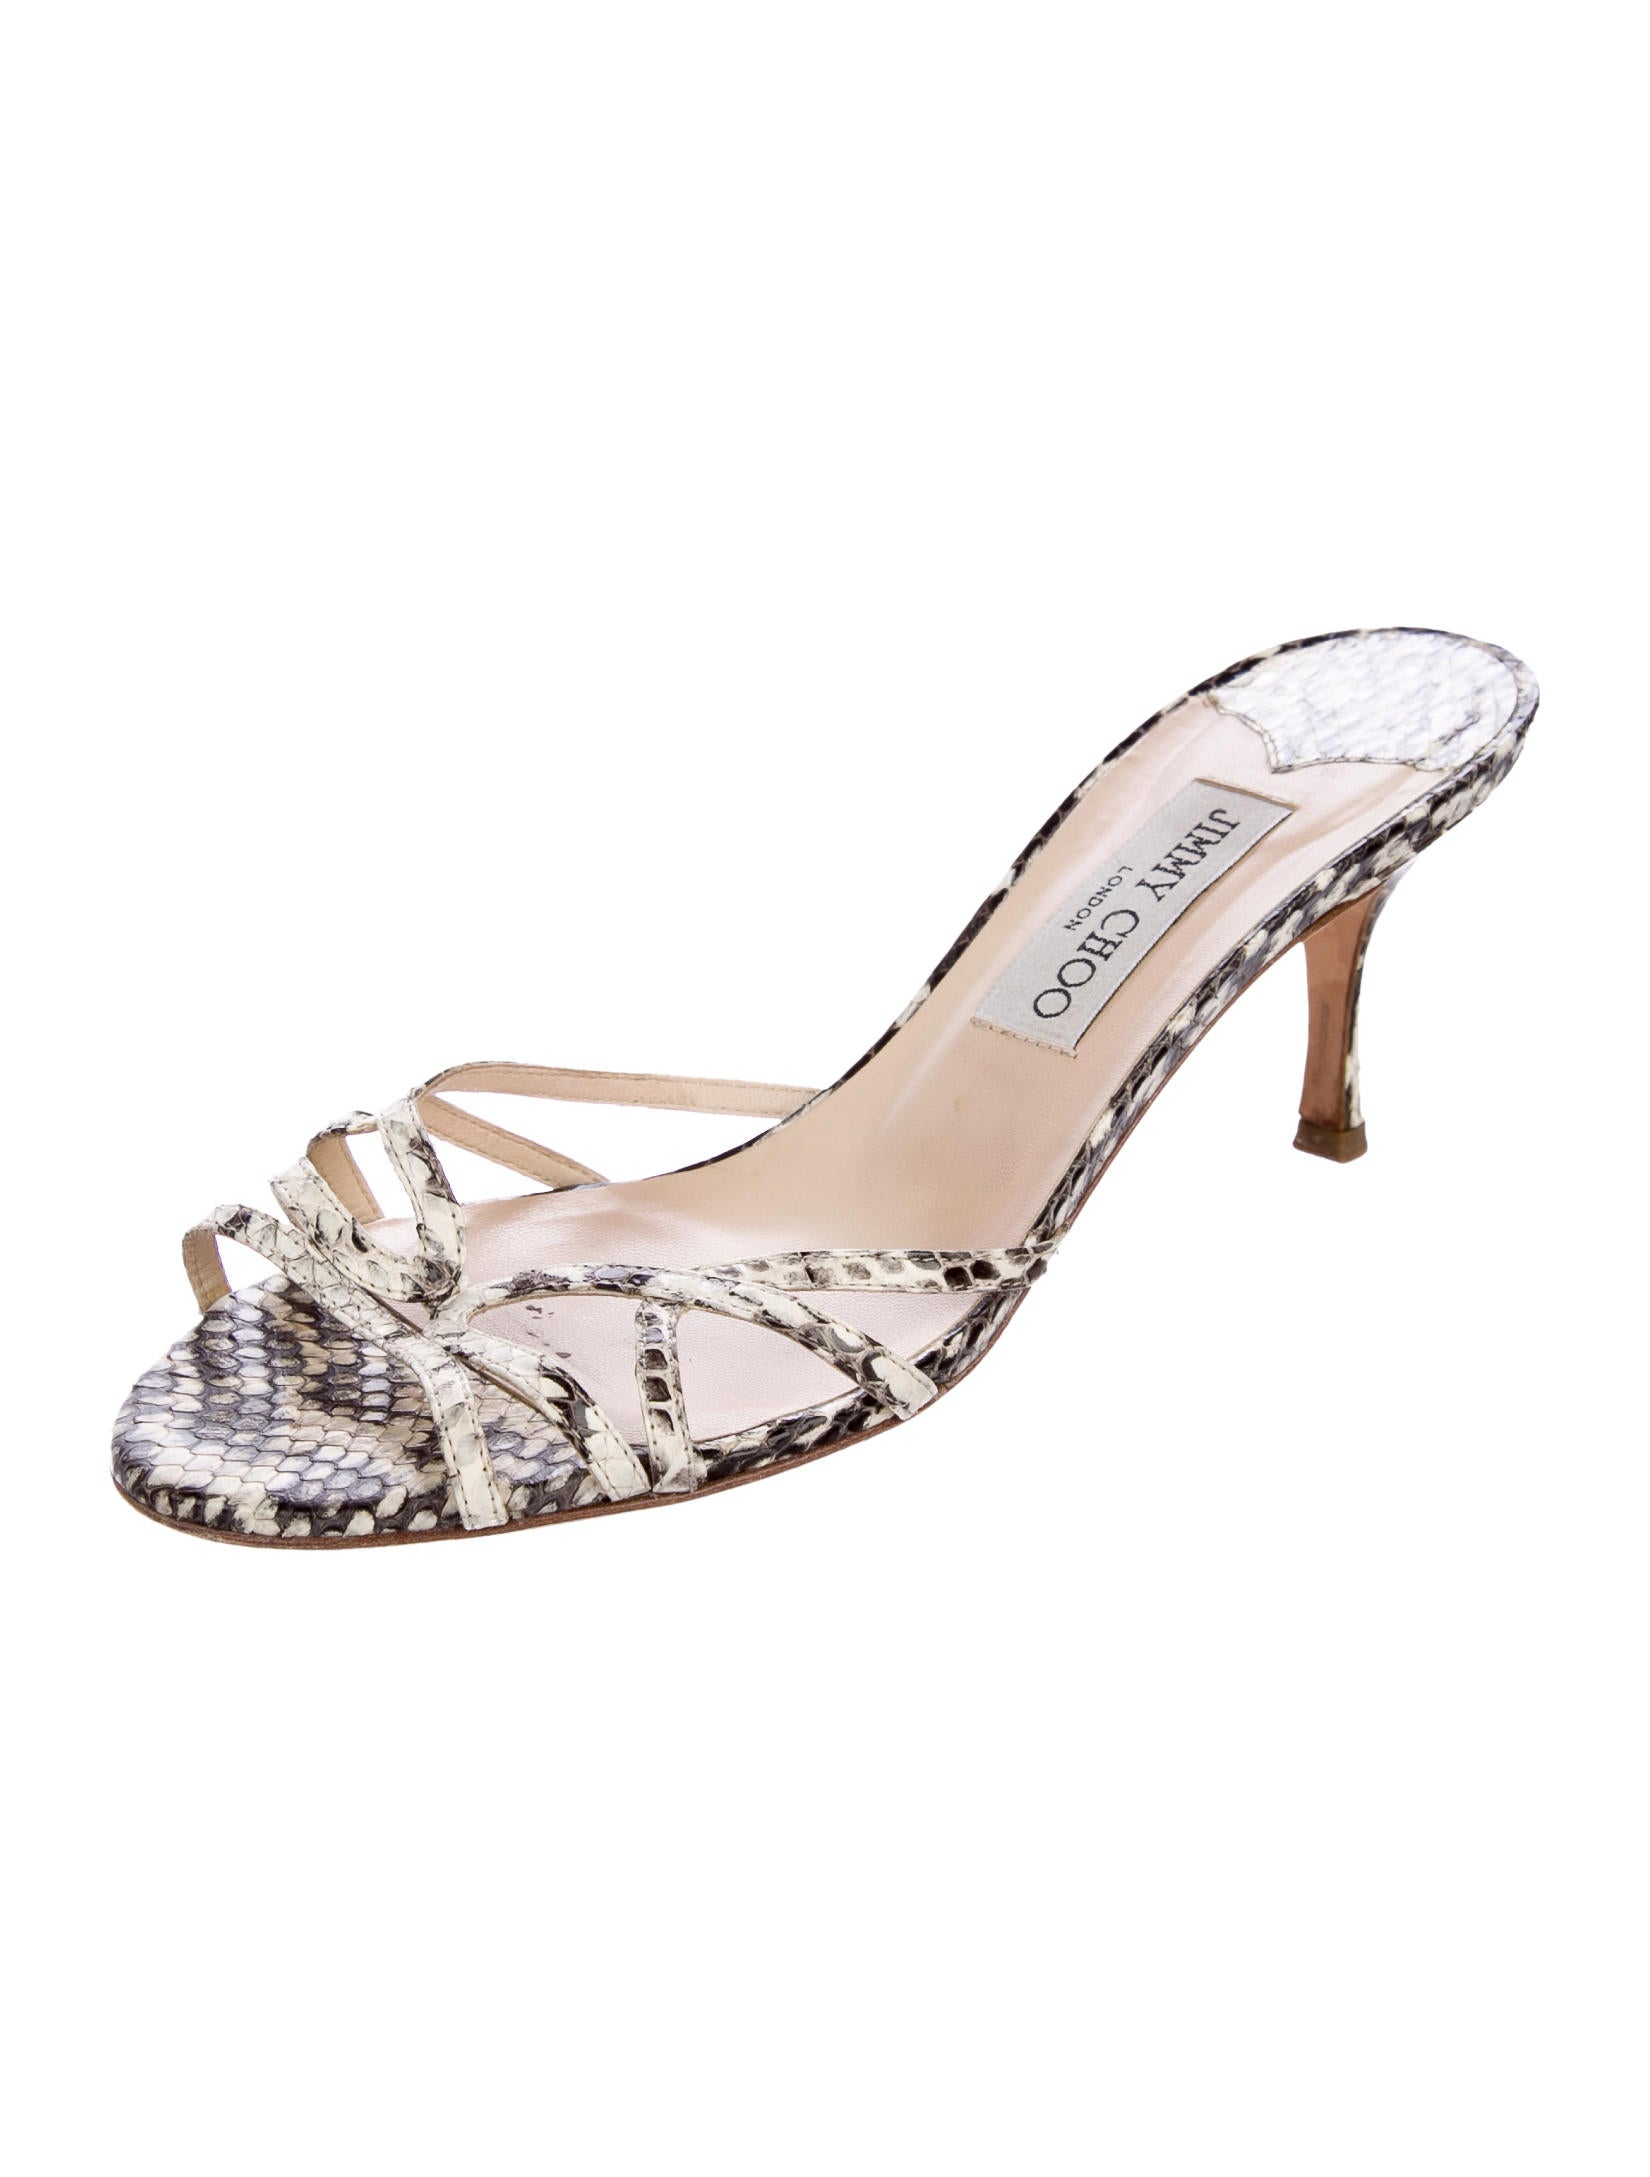 Jimmy Choo Ivana Snakeskin Sandals buy cheap sast clearance very cheap free shipping for nice online cheap price low shipping fee cheap price KjaqnIF